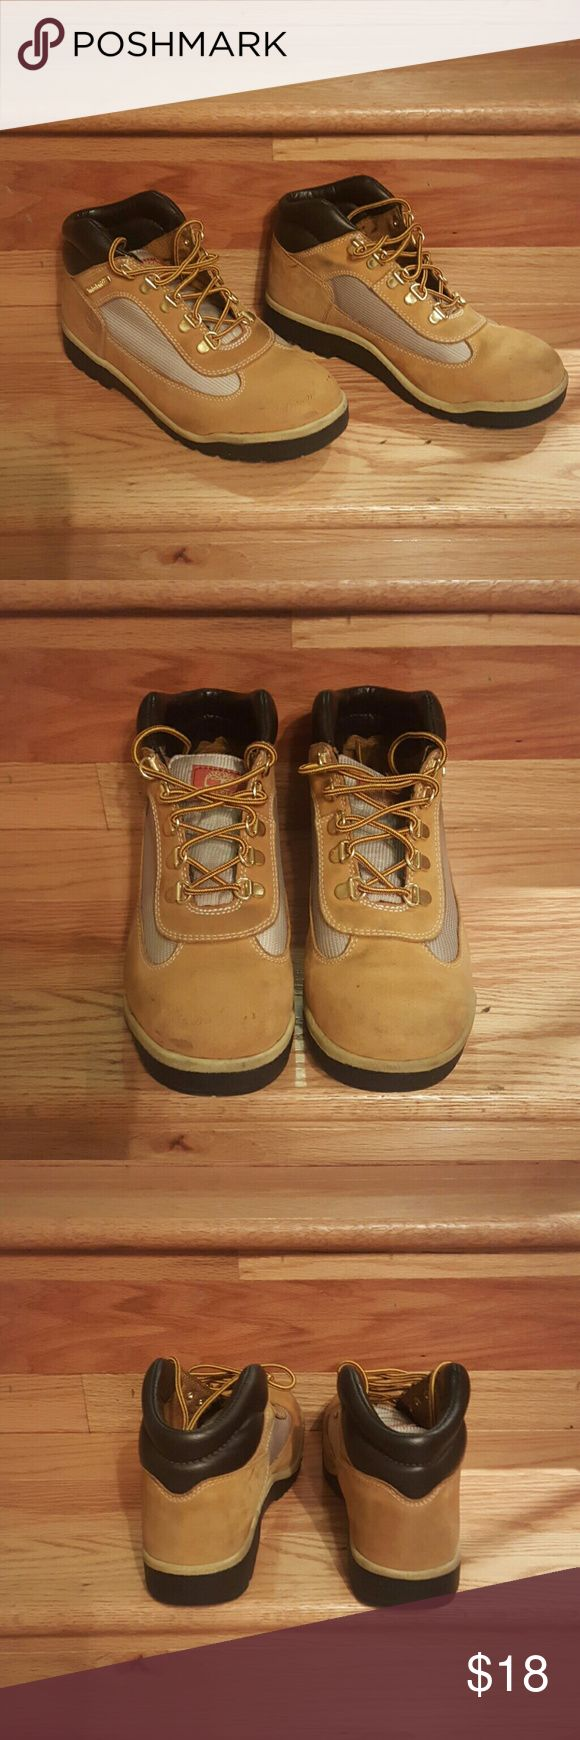 Timberland Boots Size 7.5 ankle style  Wheat Timberland boots.  Great condition. Timberland Shoes Ankle Boots & Booties